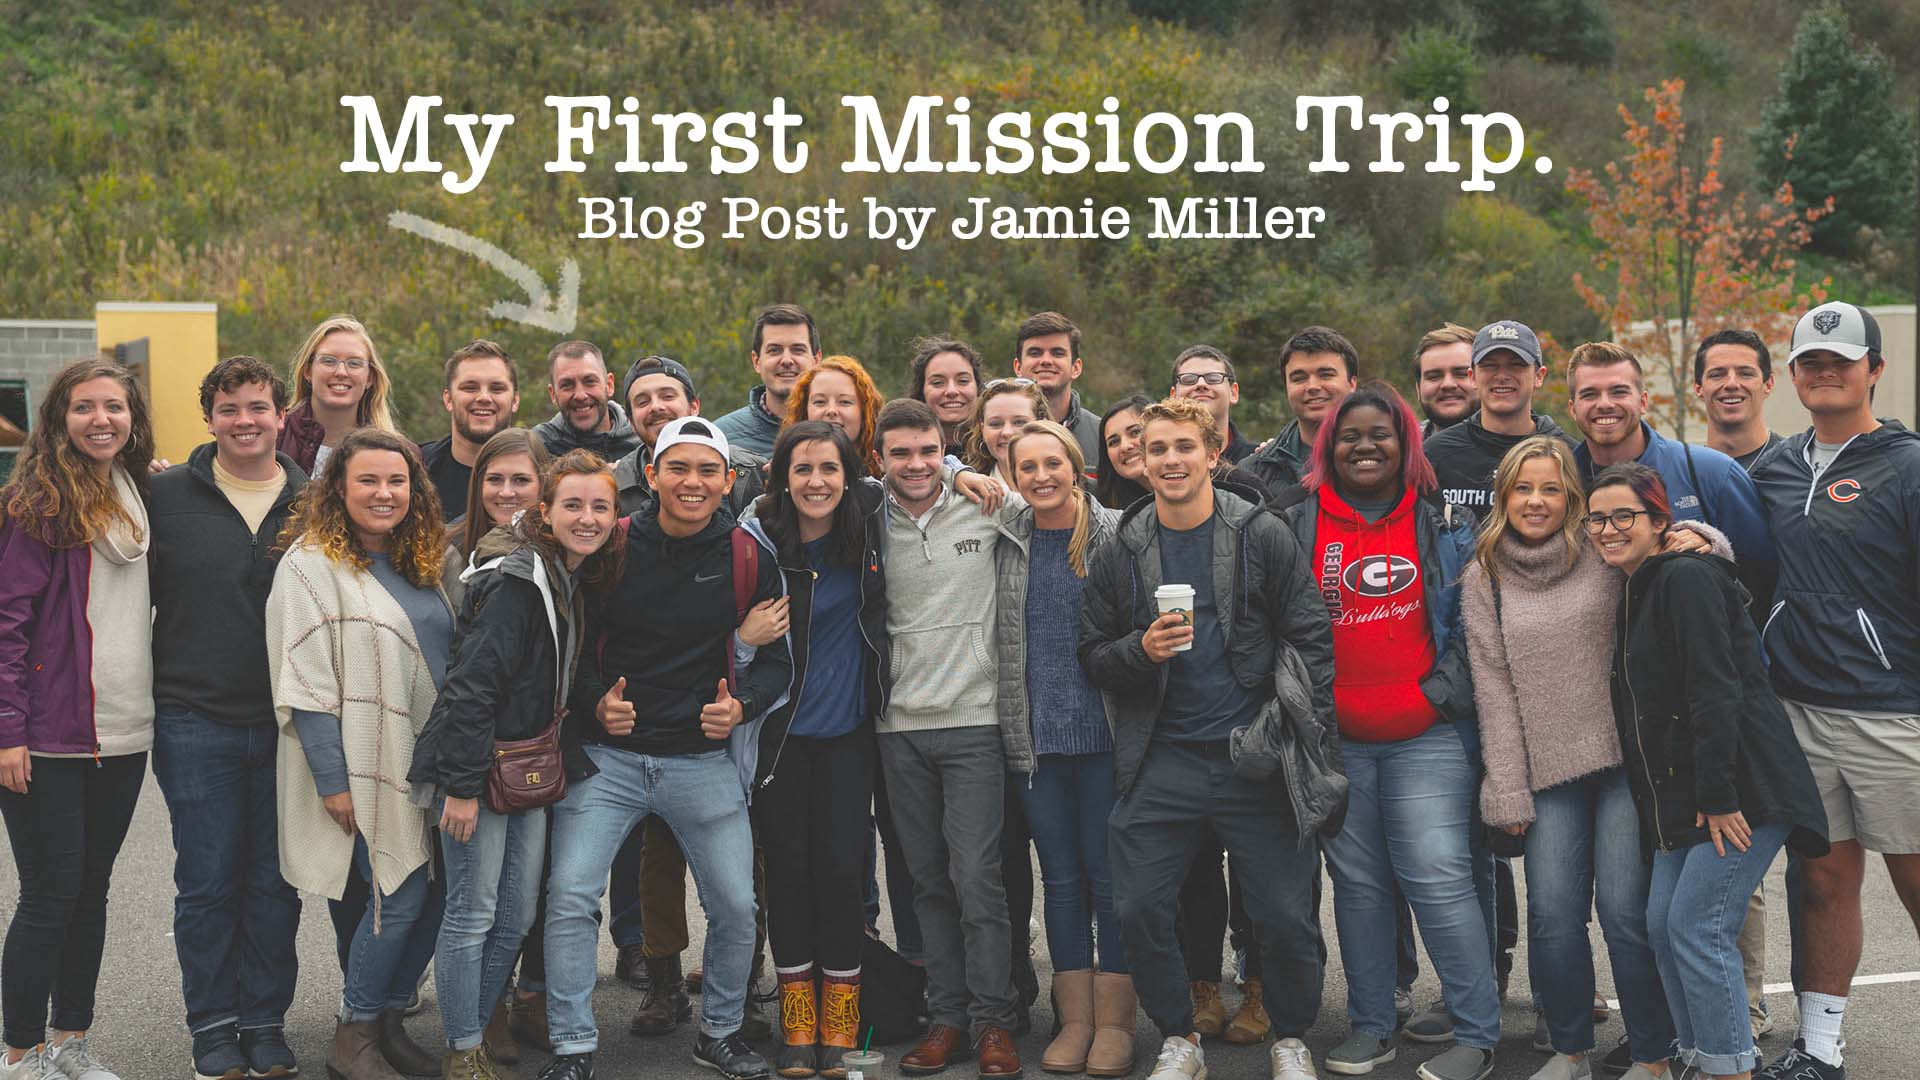 My First Mission Trip